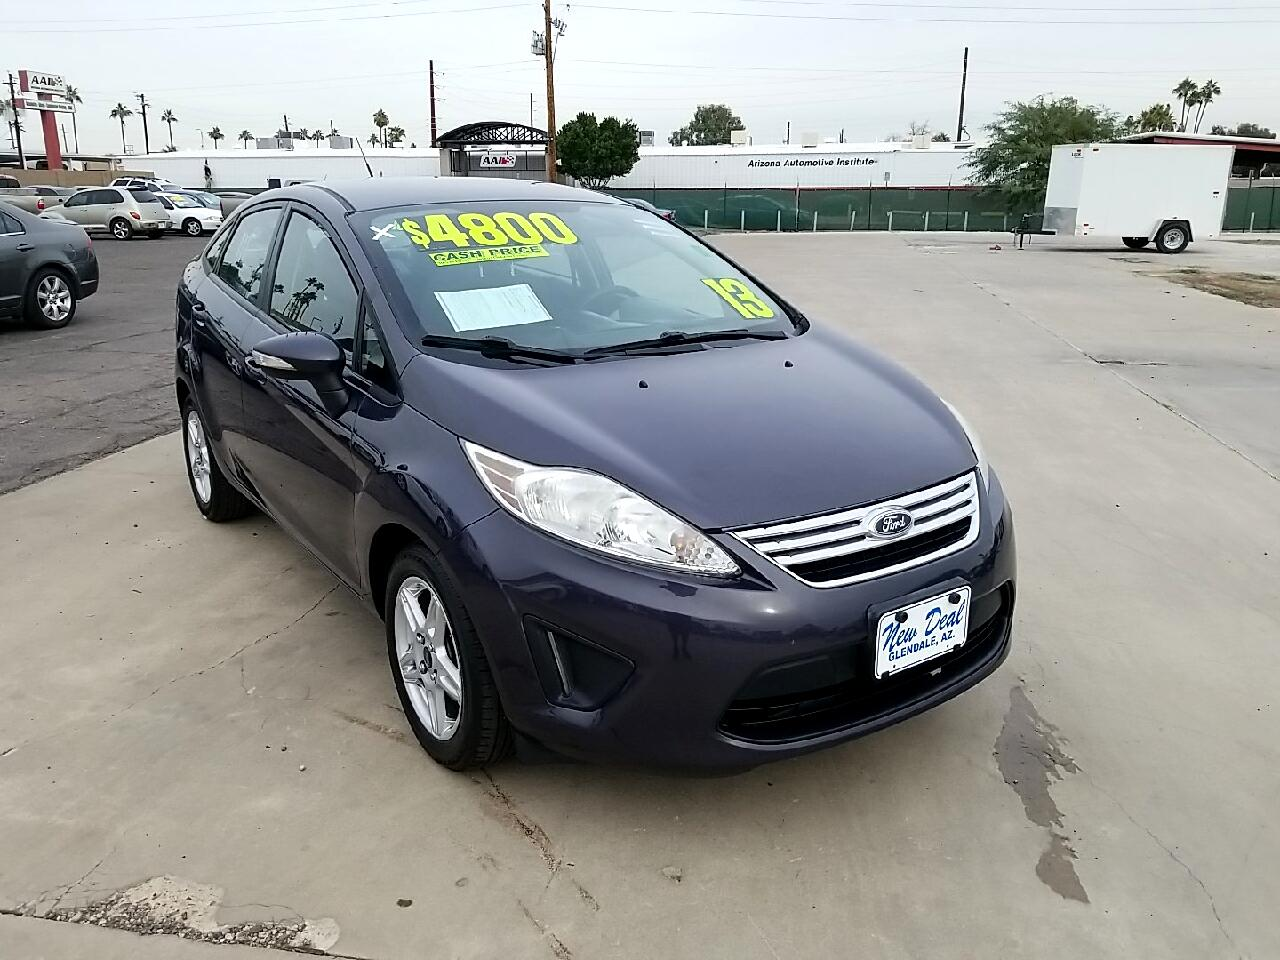 Ford Fiesta 4dr Sdn SEL 2013